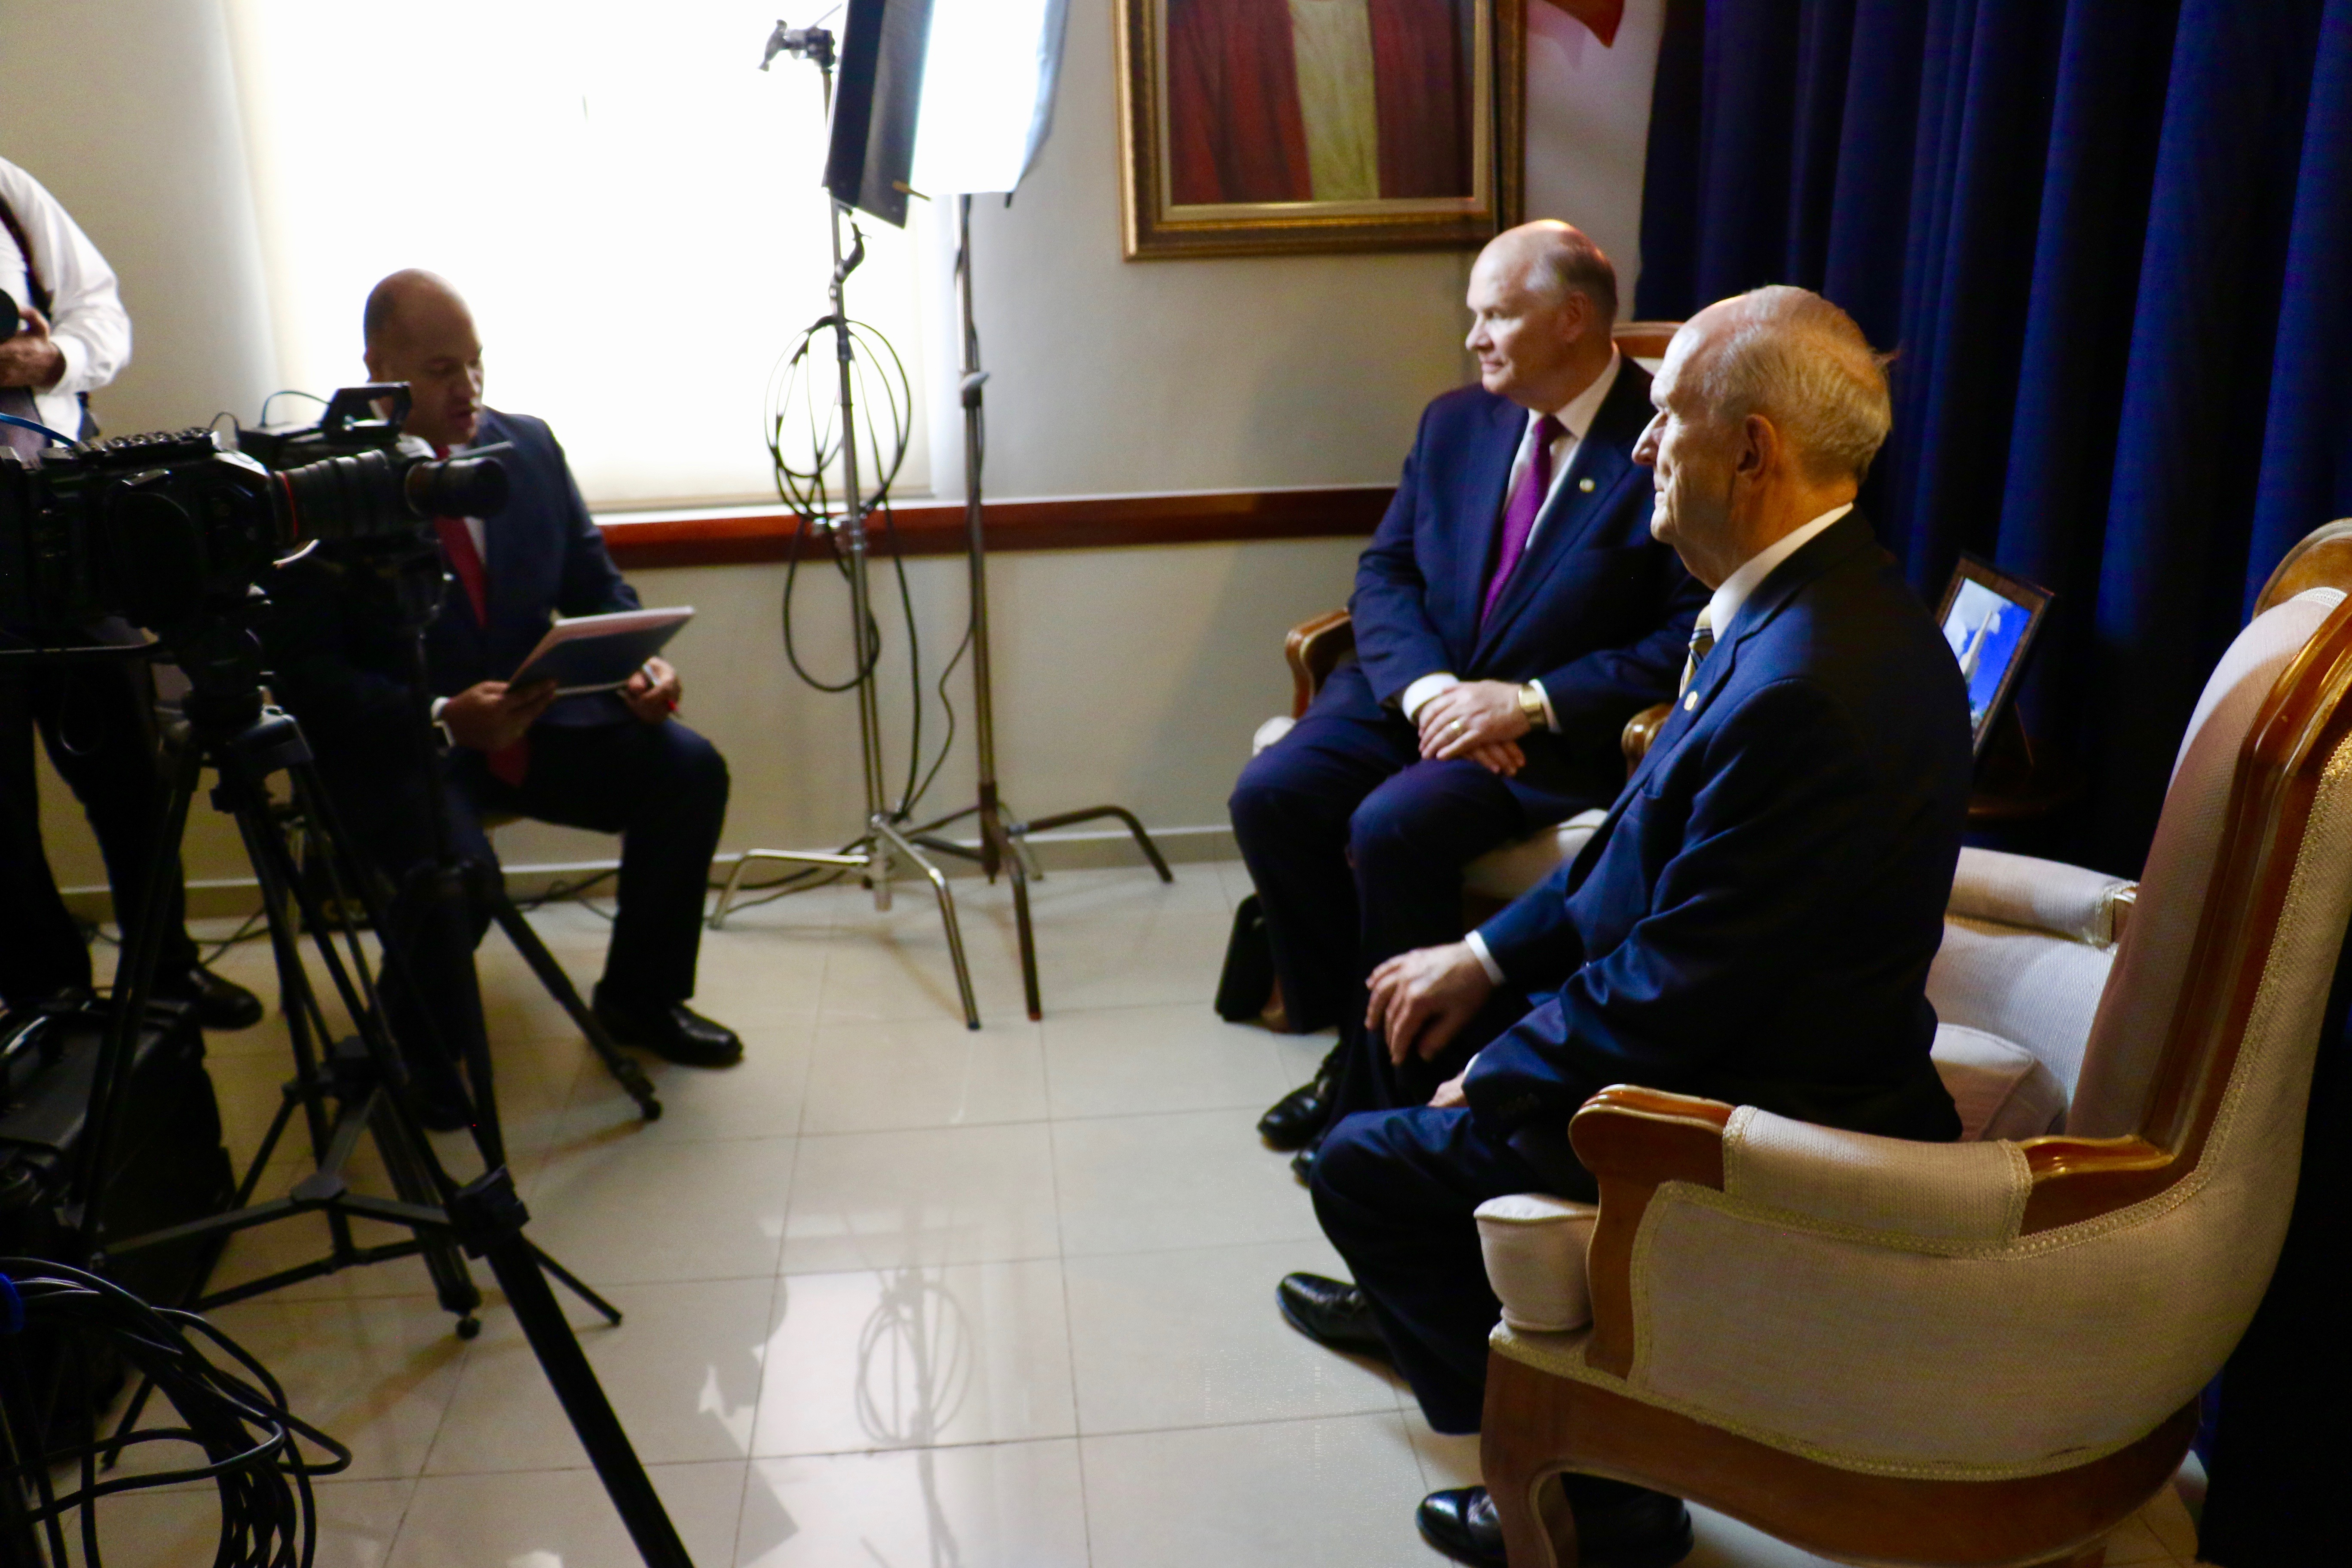 President Russell M. Nelson, right, and Elder Dale G. Renlund are interviewed by local media following a Sept. 1, 2018, member devotional in Santo Domingo, Dominican Republic.